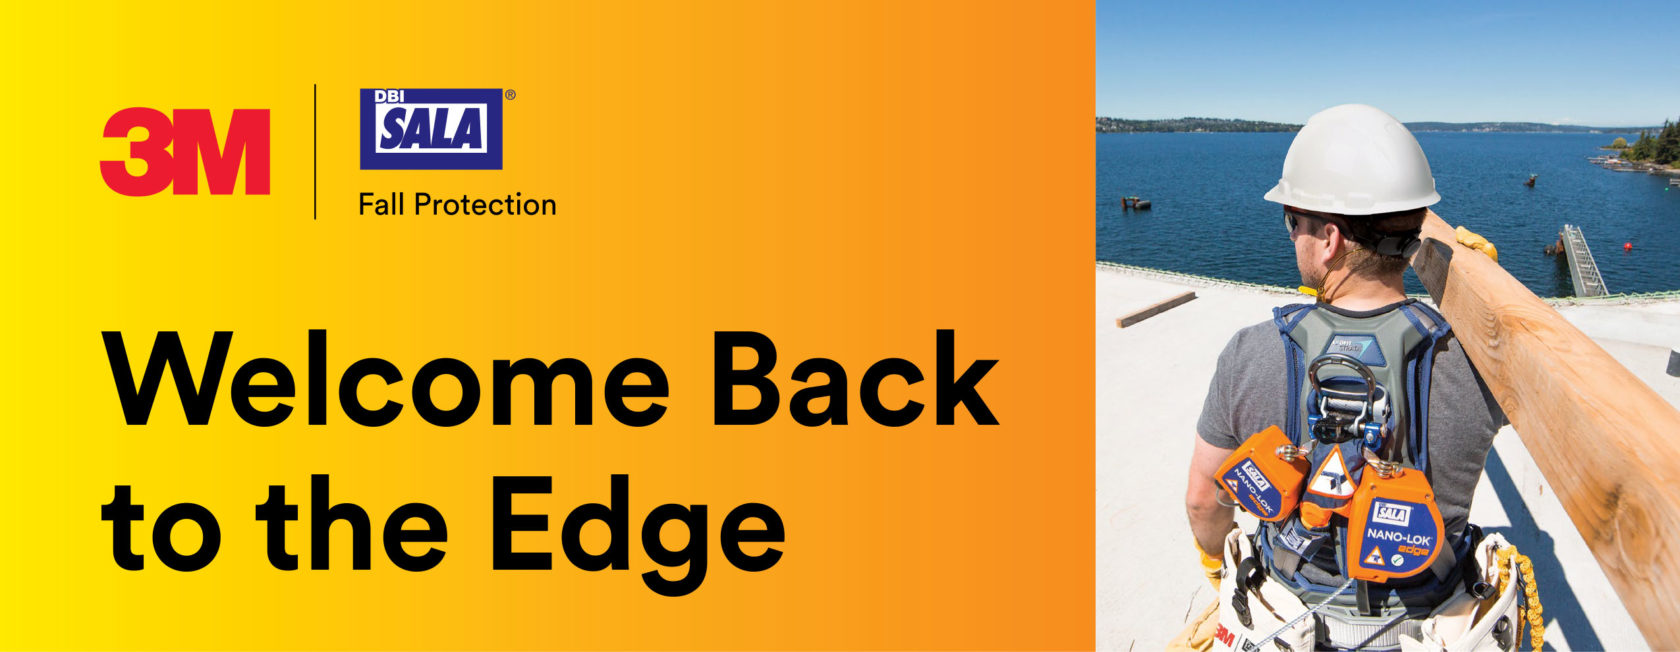 Welcome back to the edge